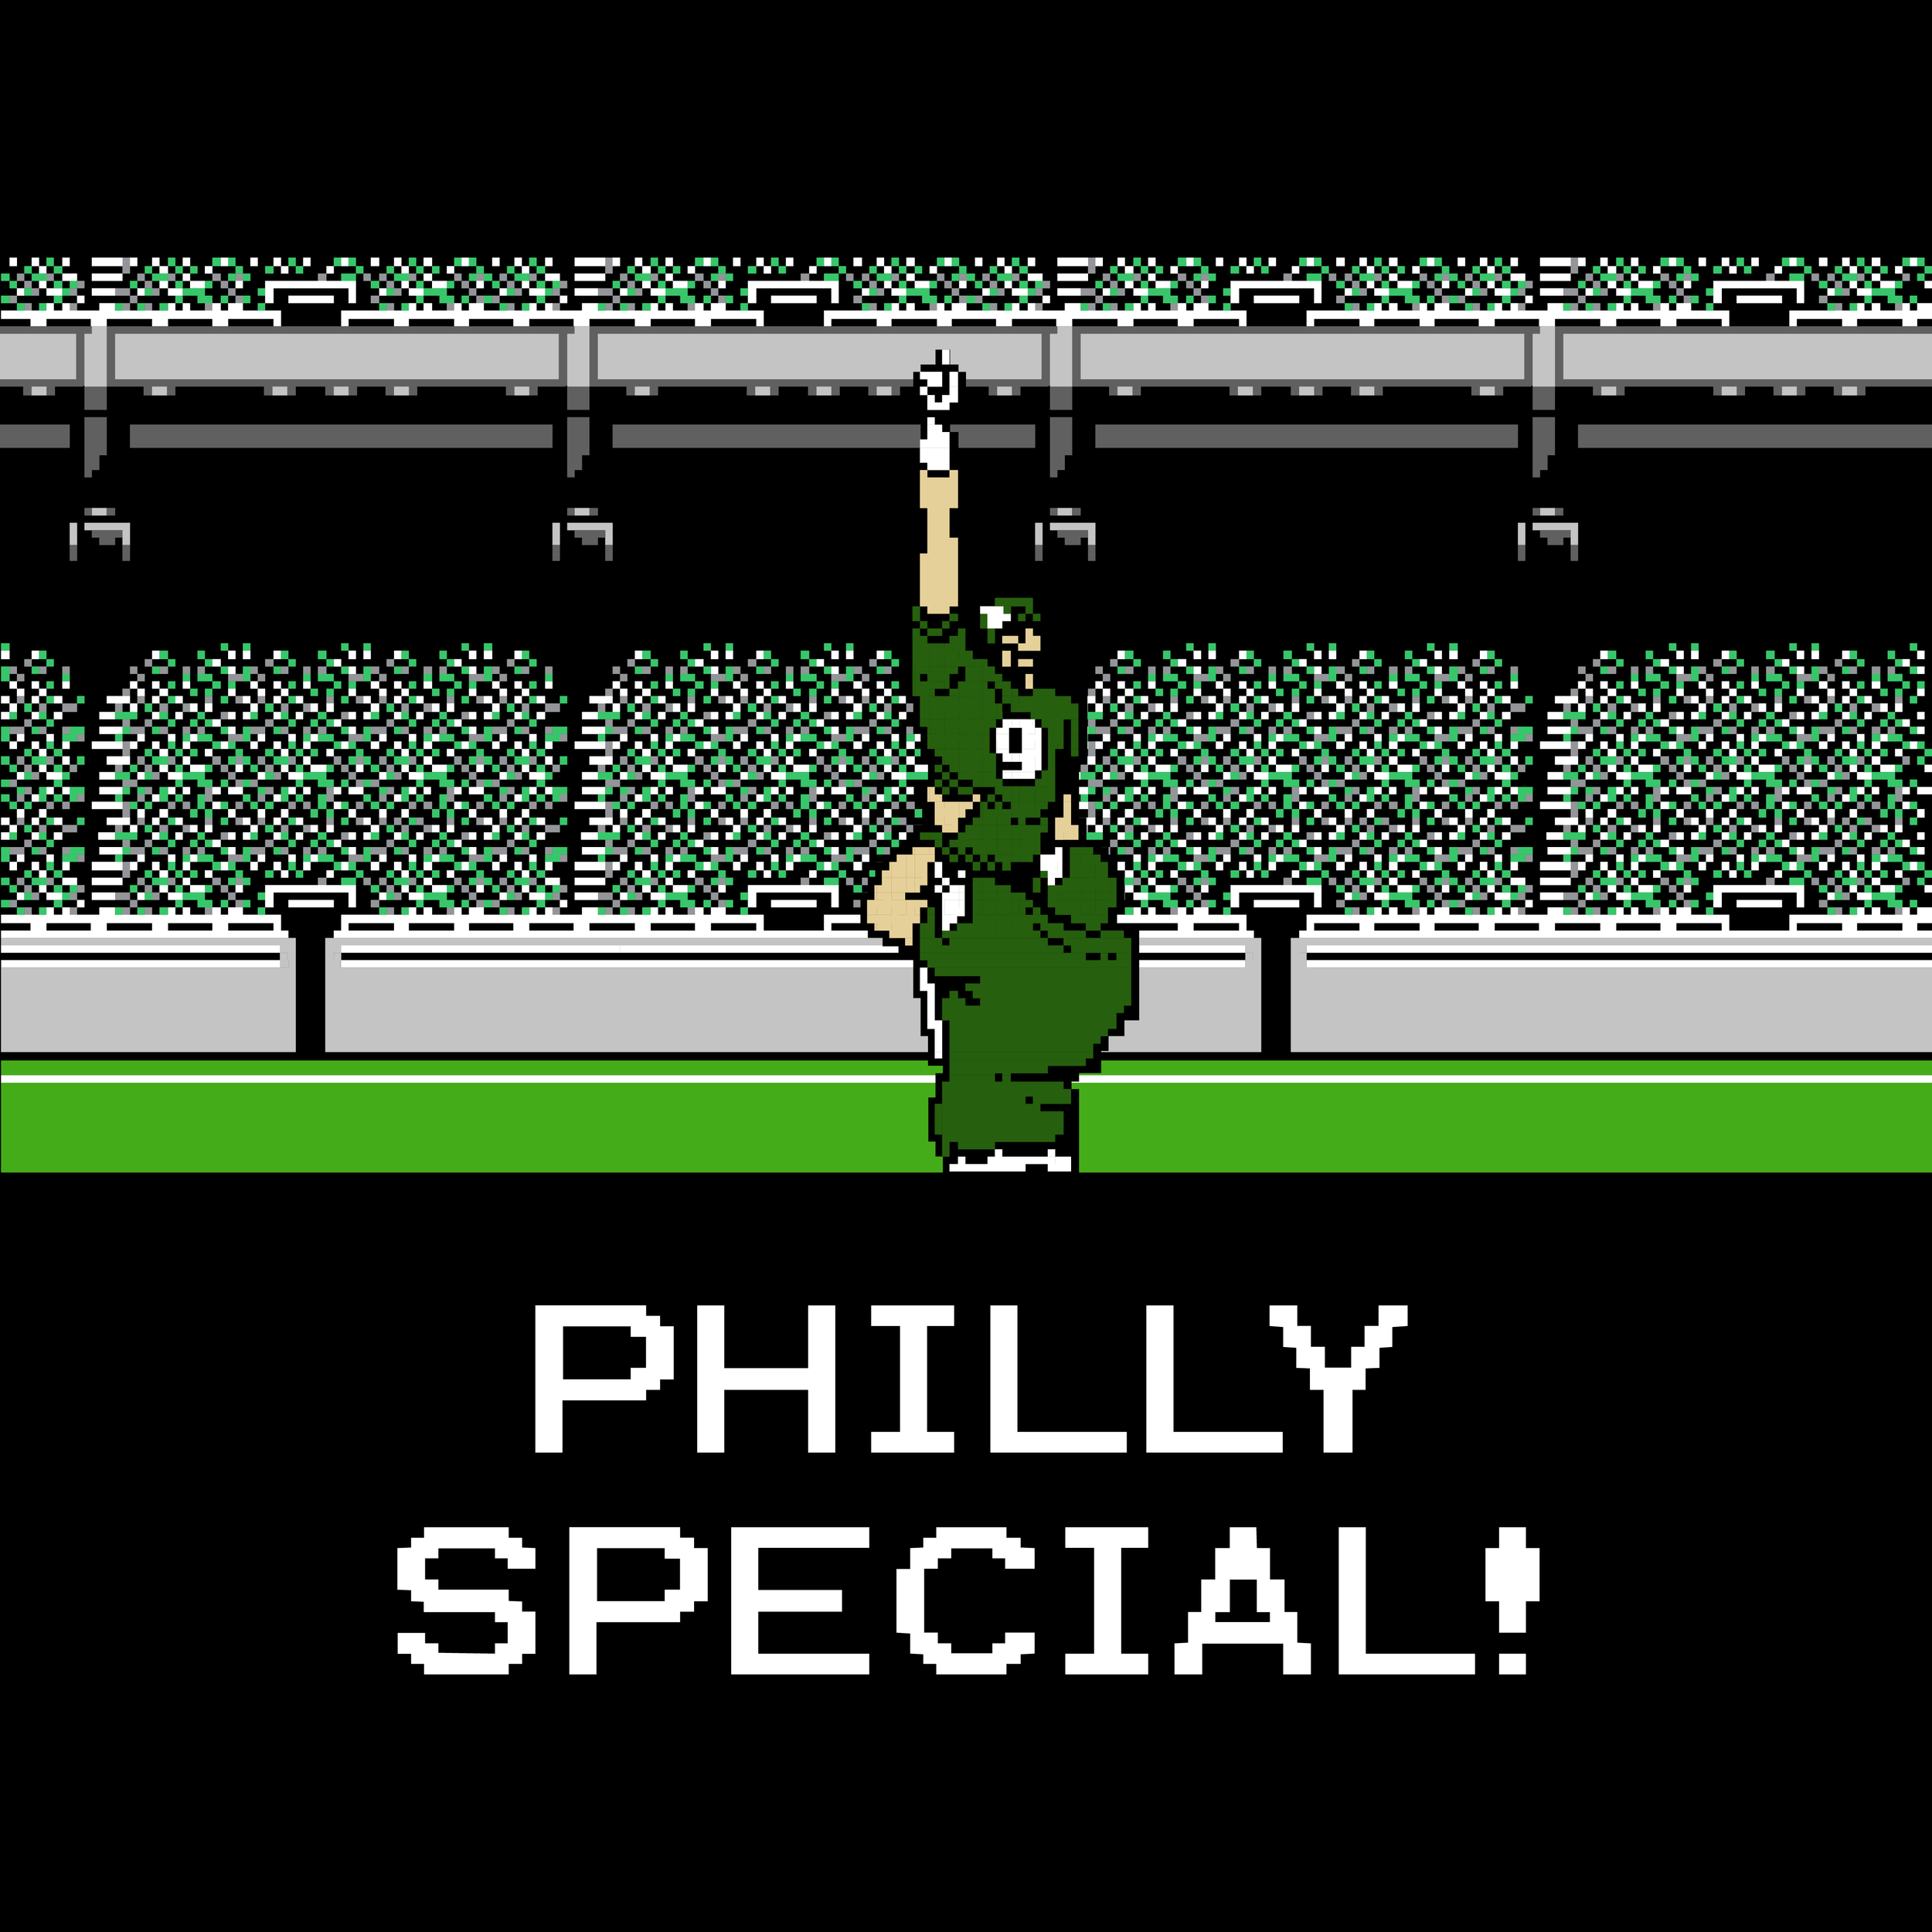 phillyspecial-2x.png